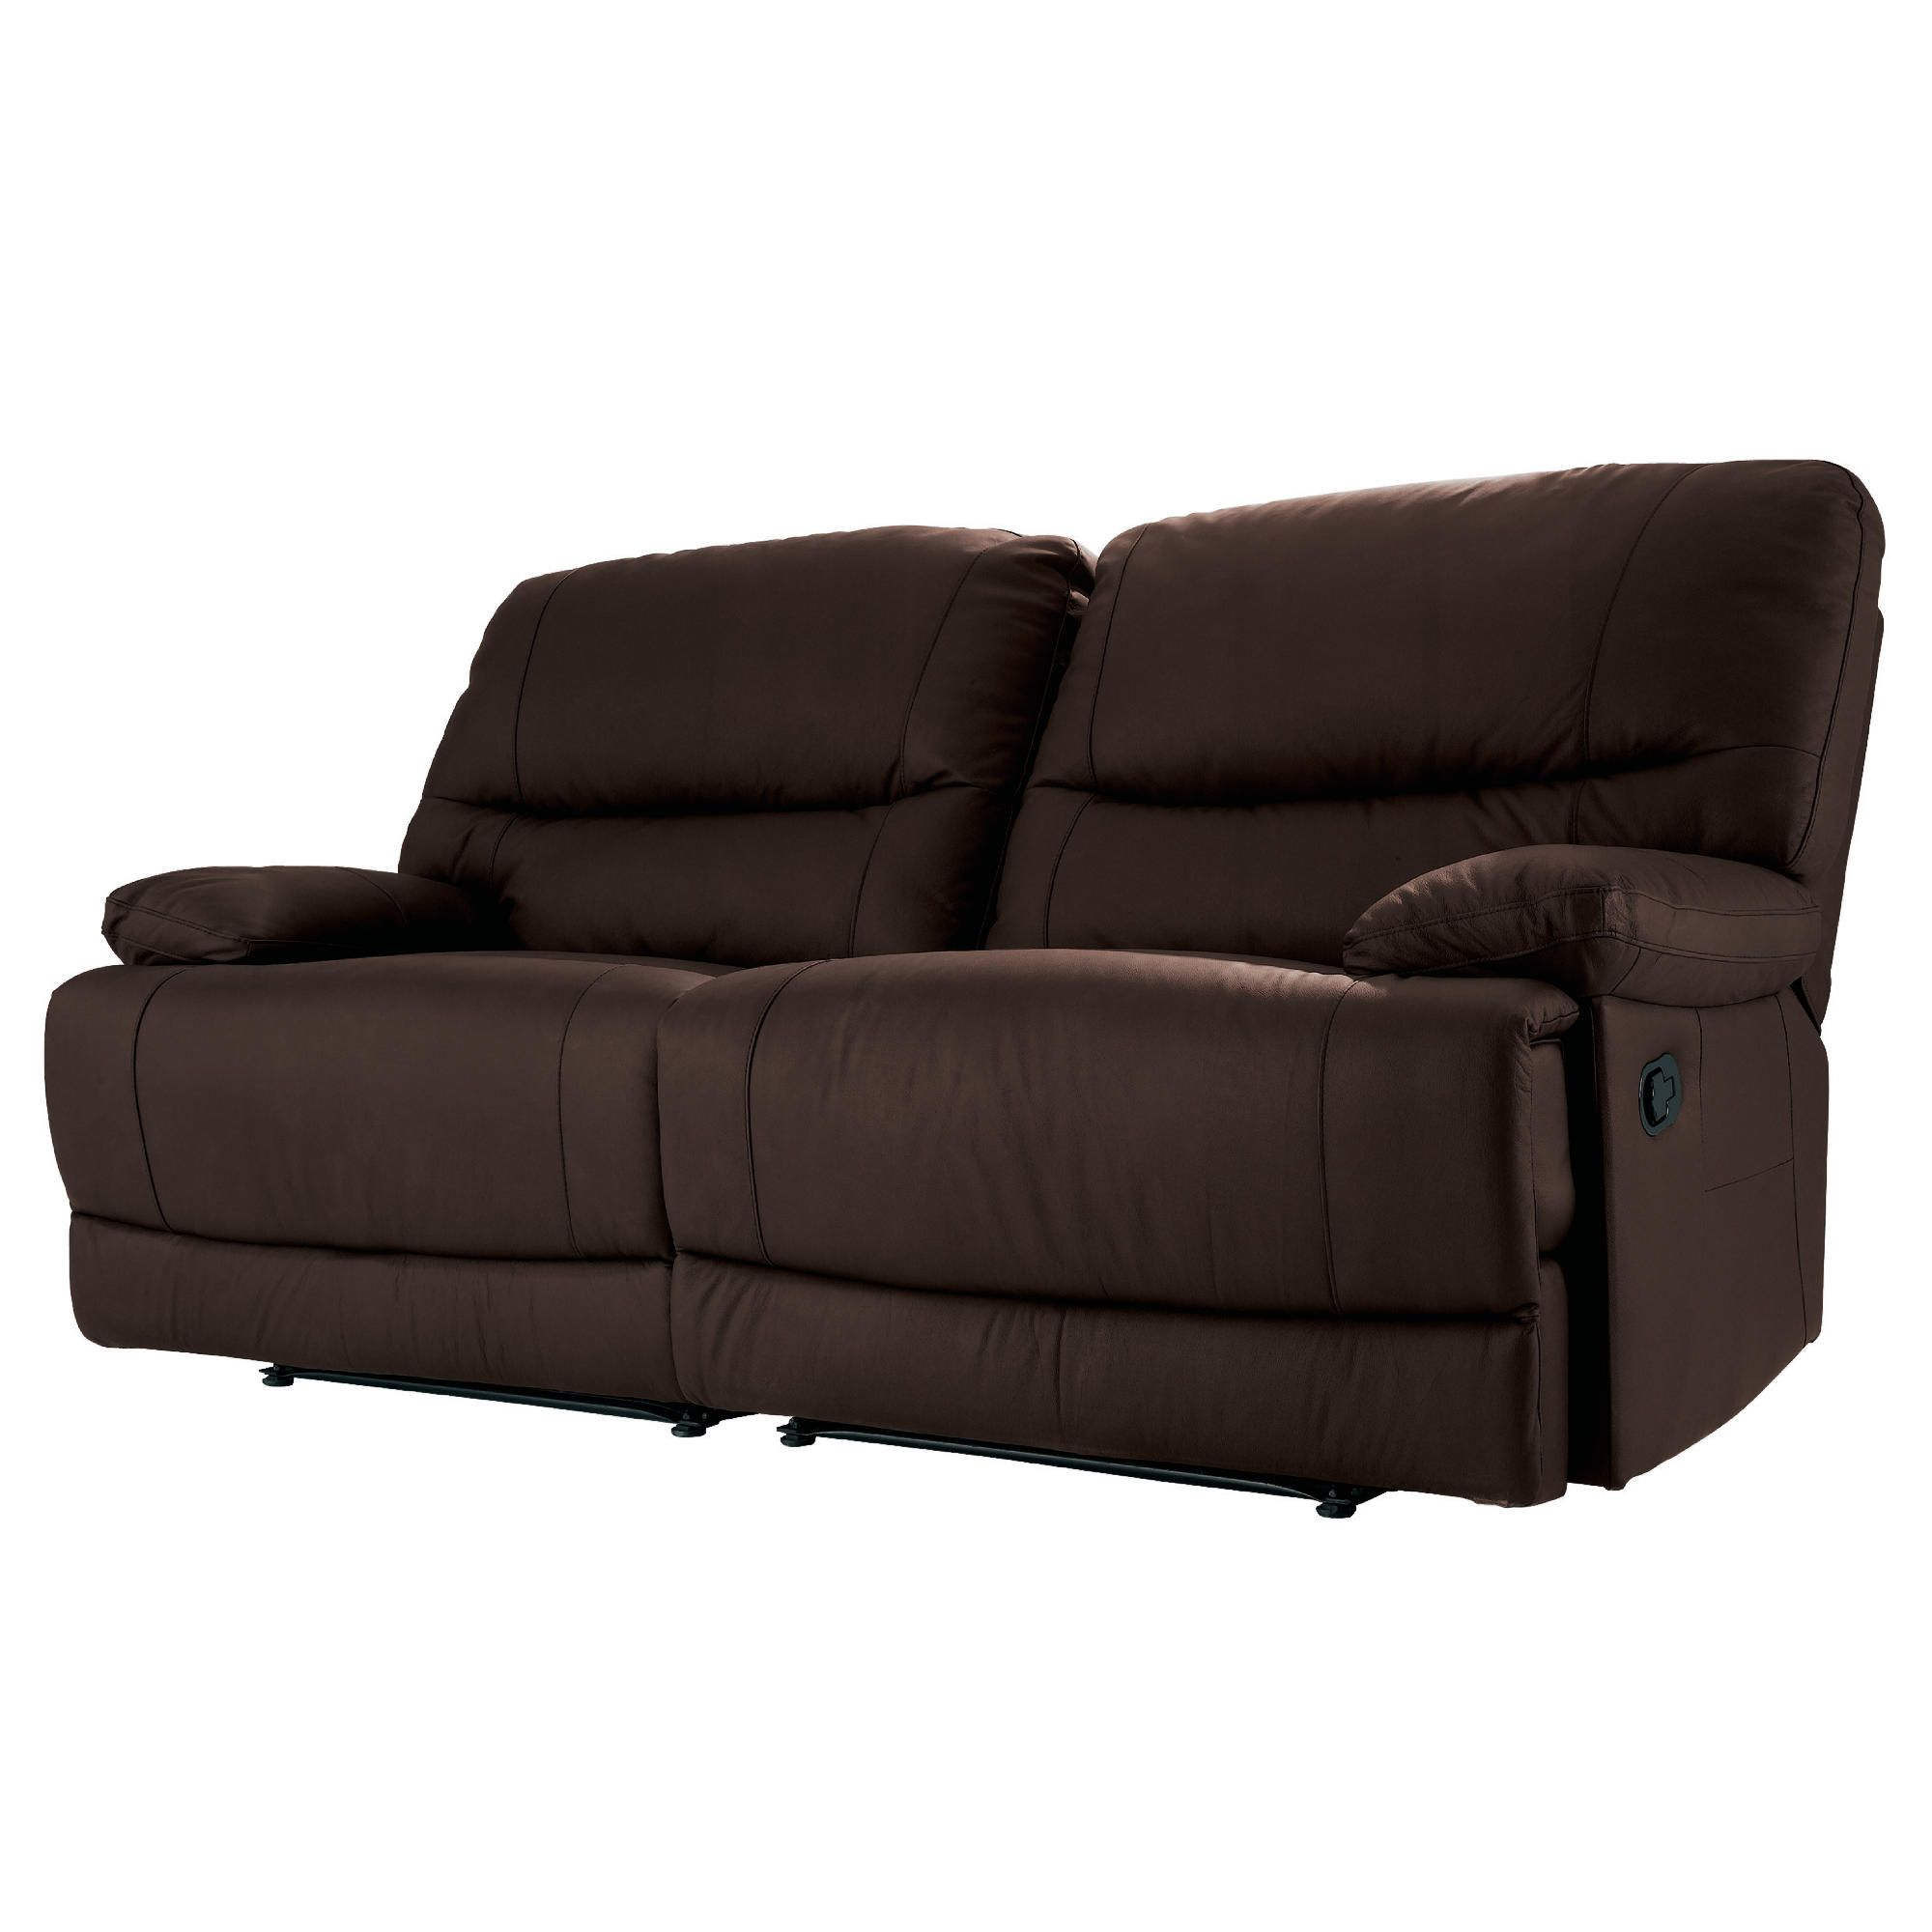 Angelo Leather Large Double Recliner Sofa, Chocolate at Tesco Direct